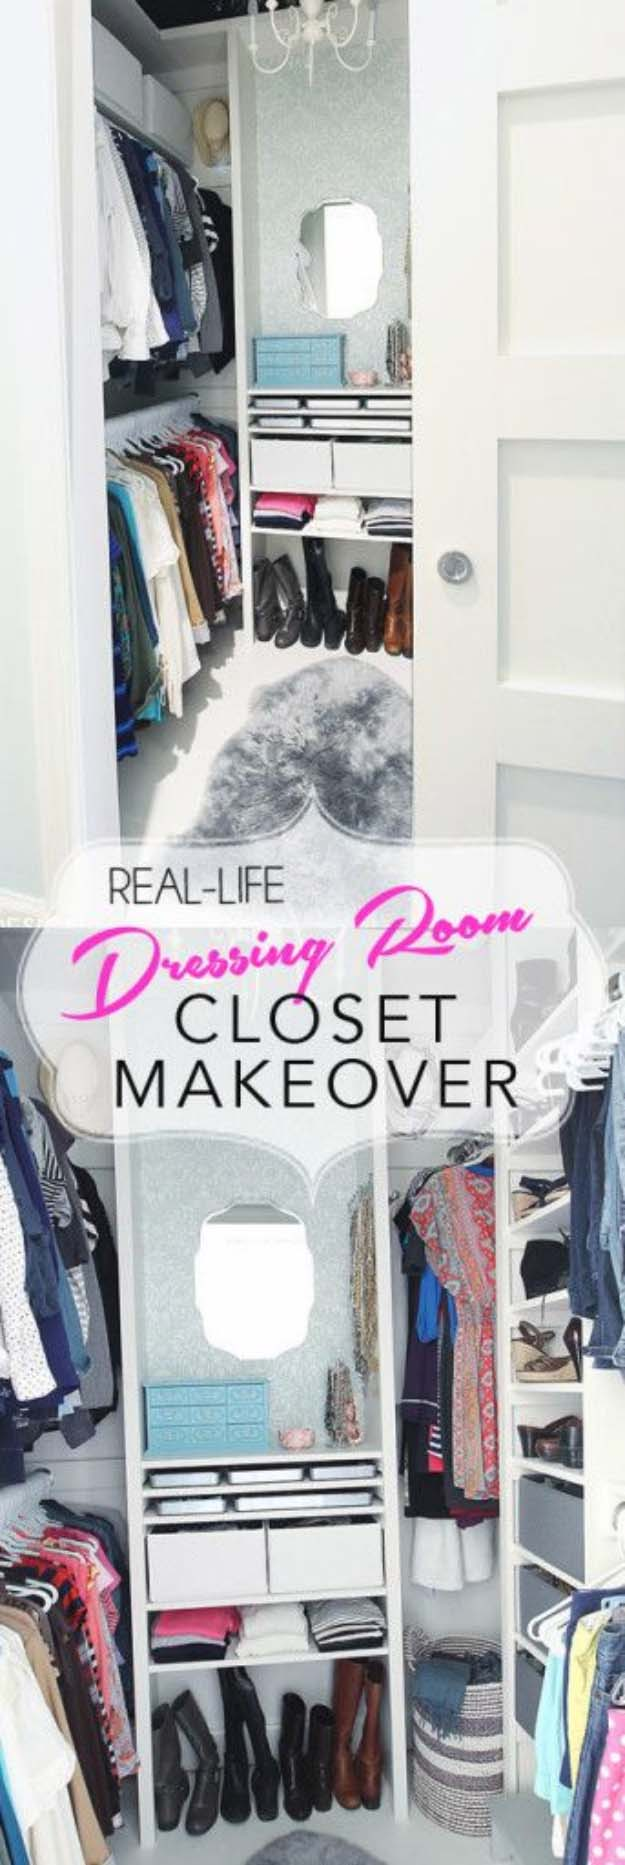 31 closet organizing hacks and organization ideas   page 4 of 7 ...